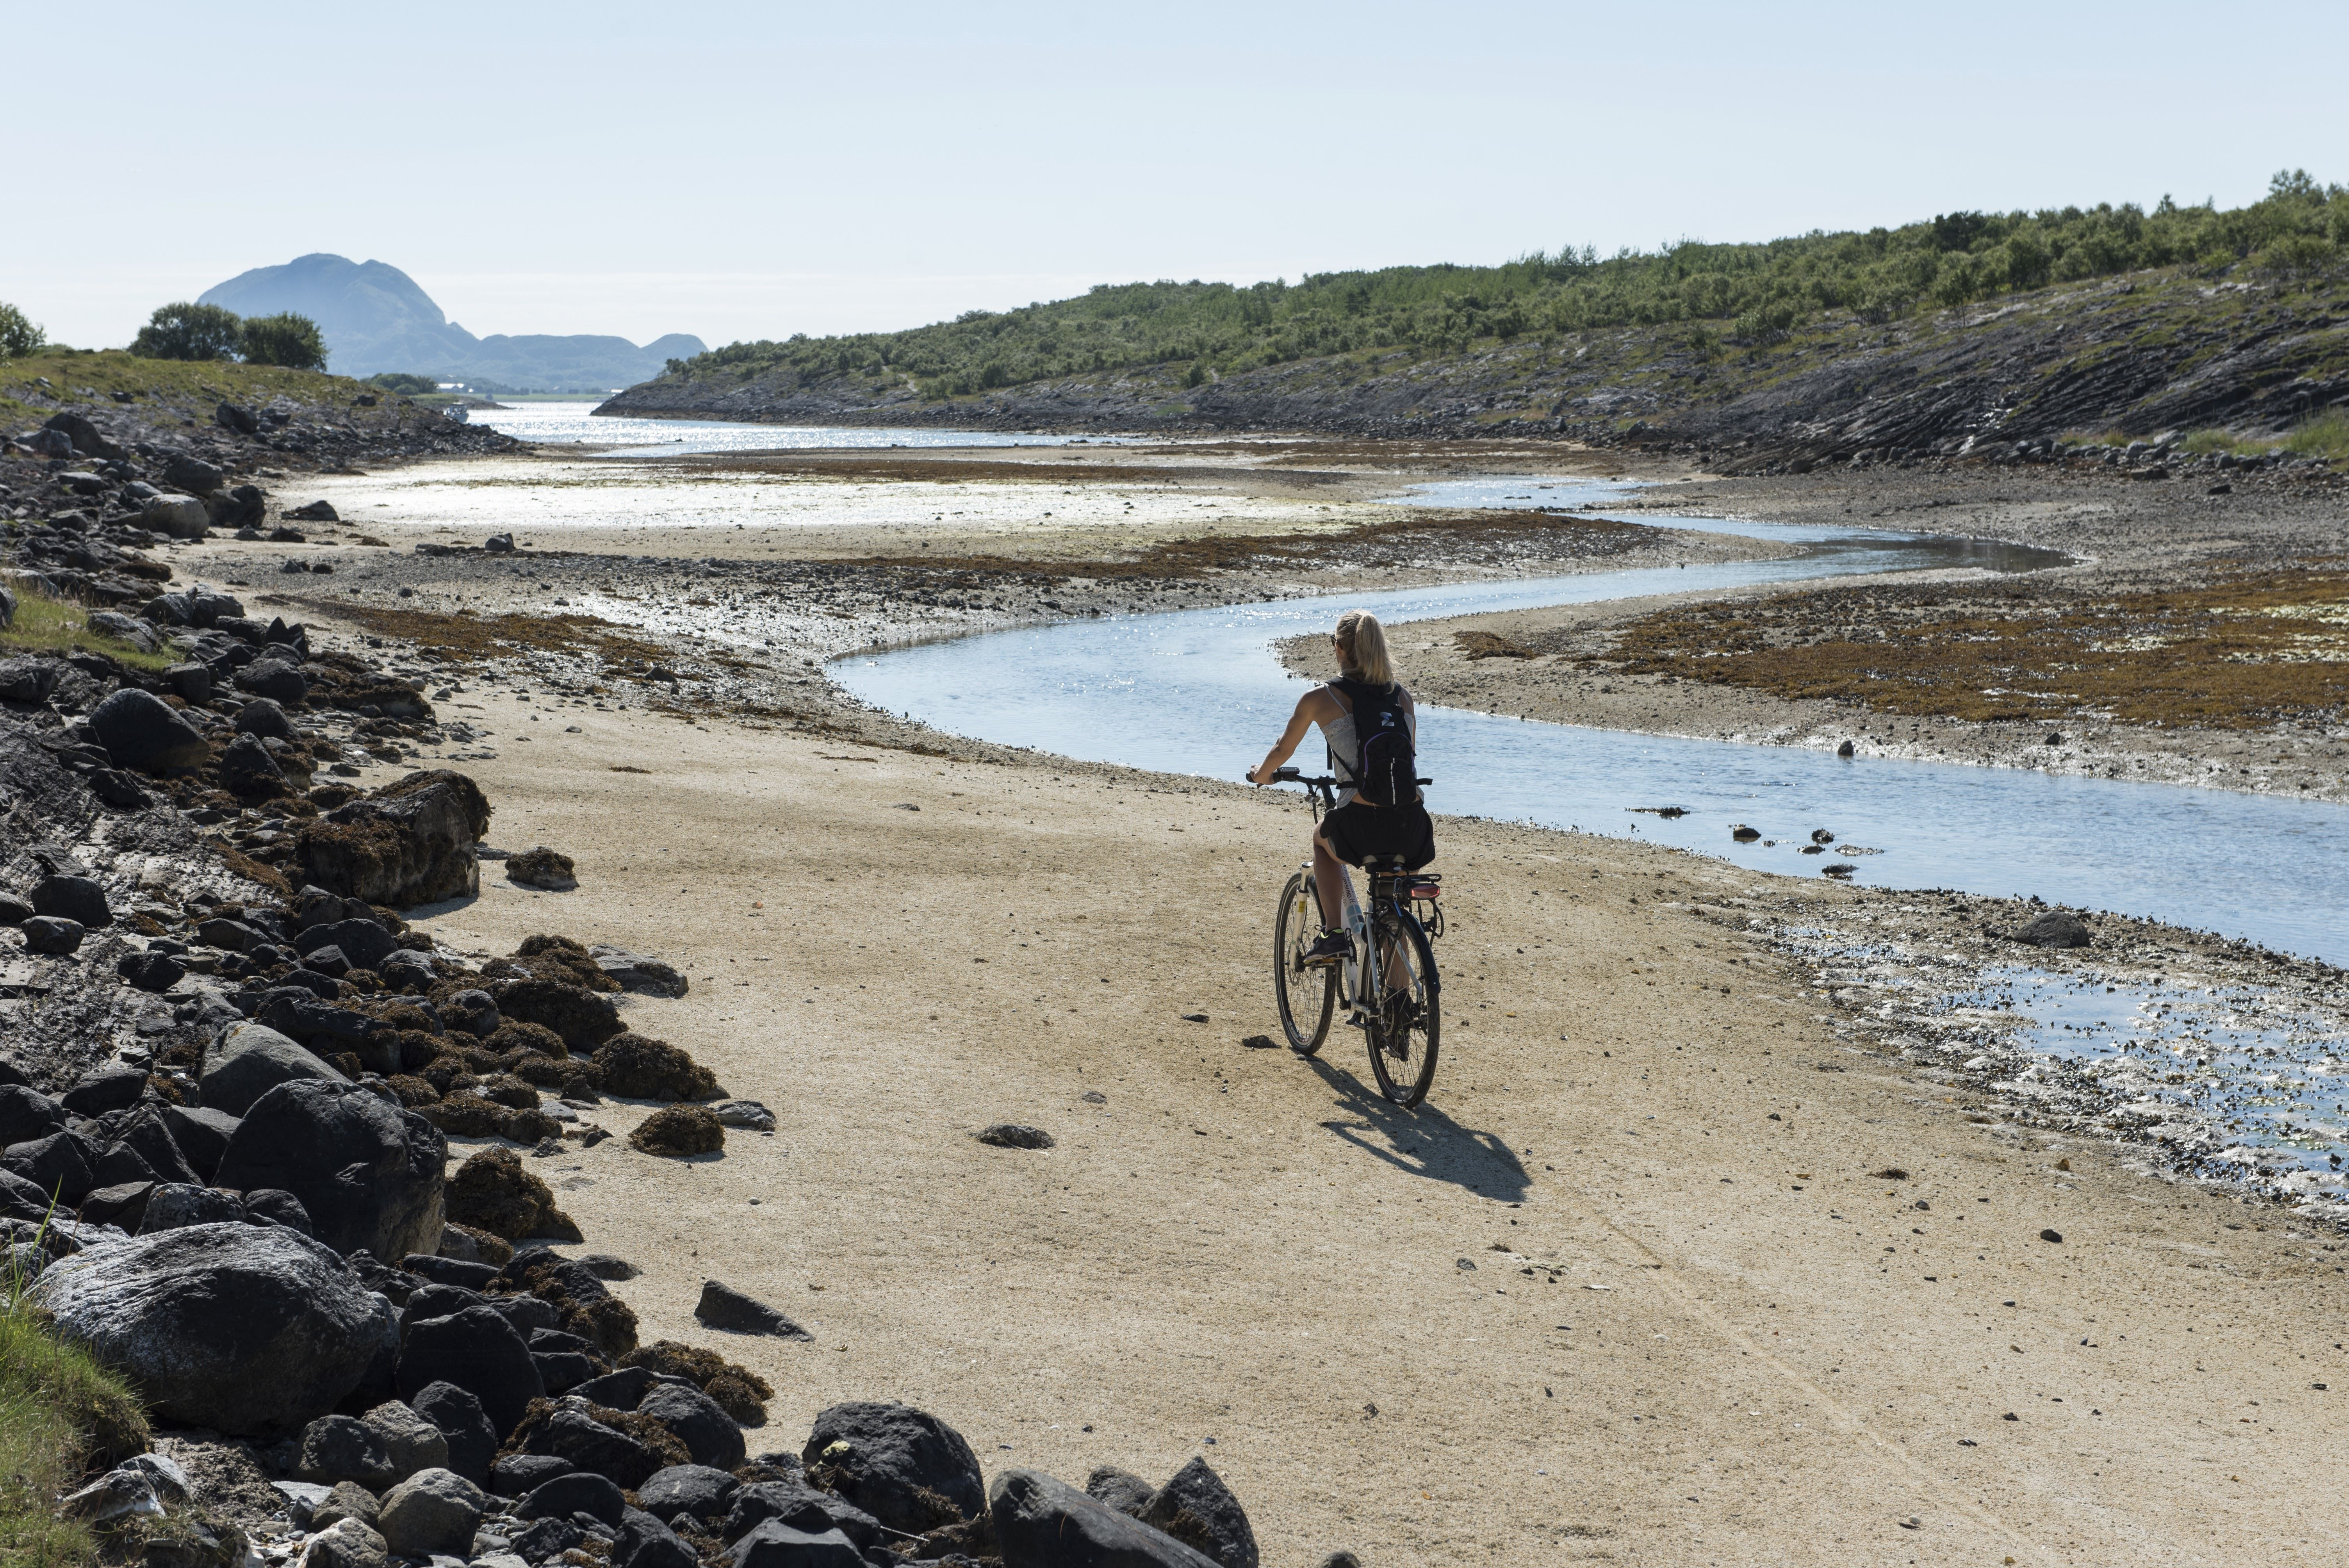 A bicycle tour with tasteful experiences at the beautiful coast of Helgeland